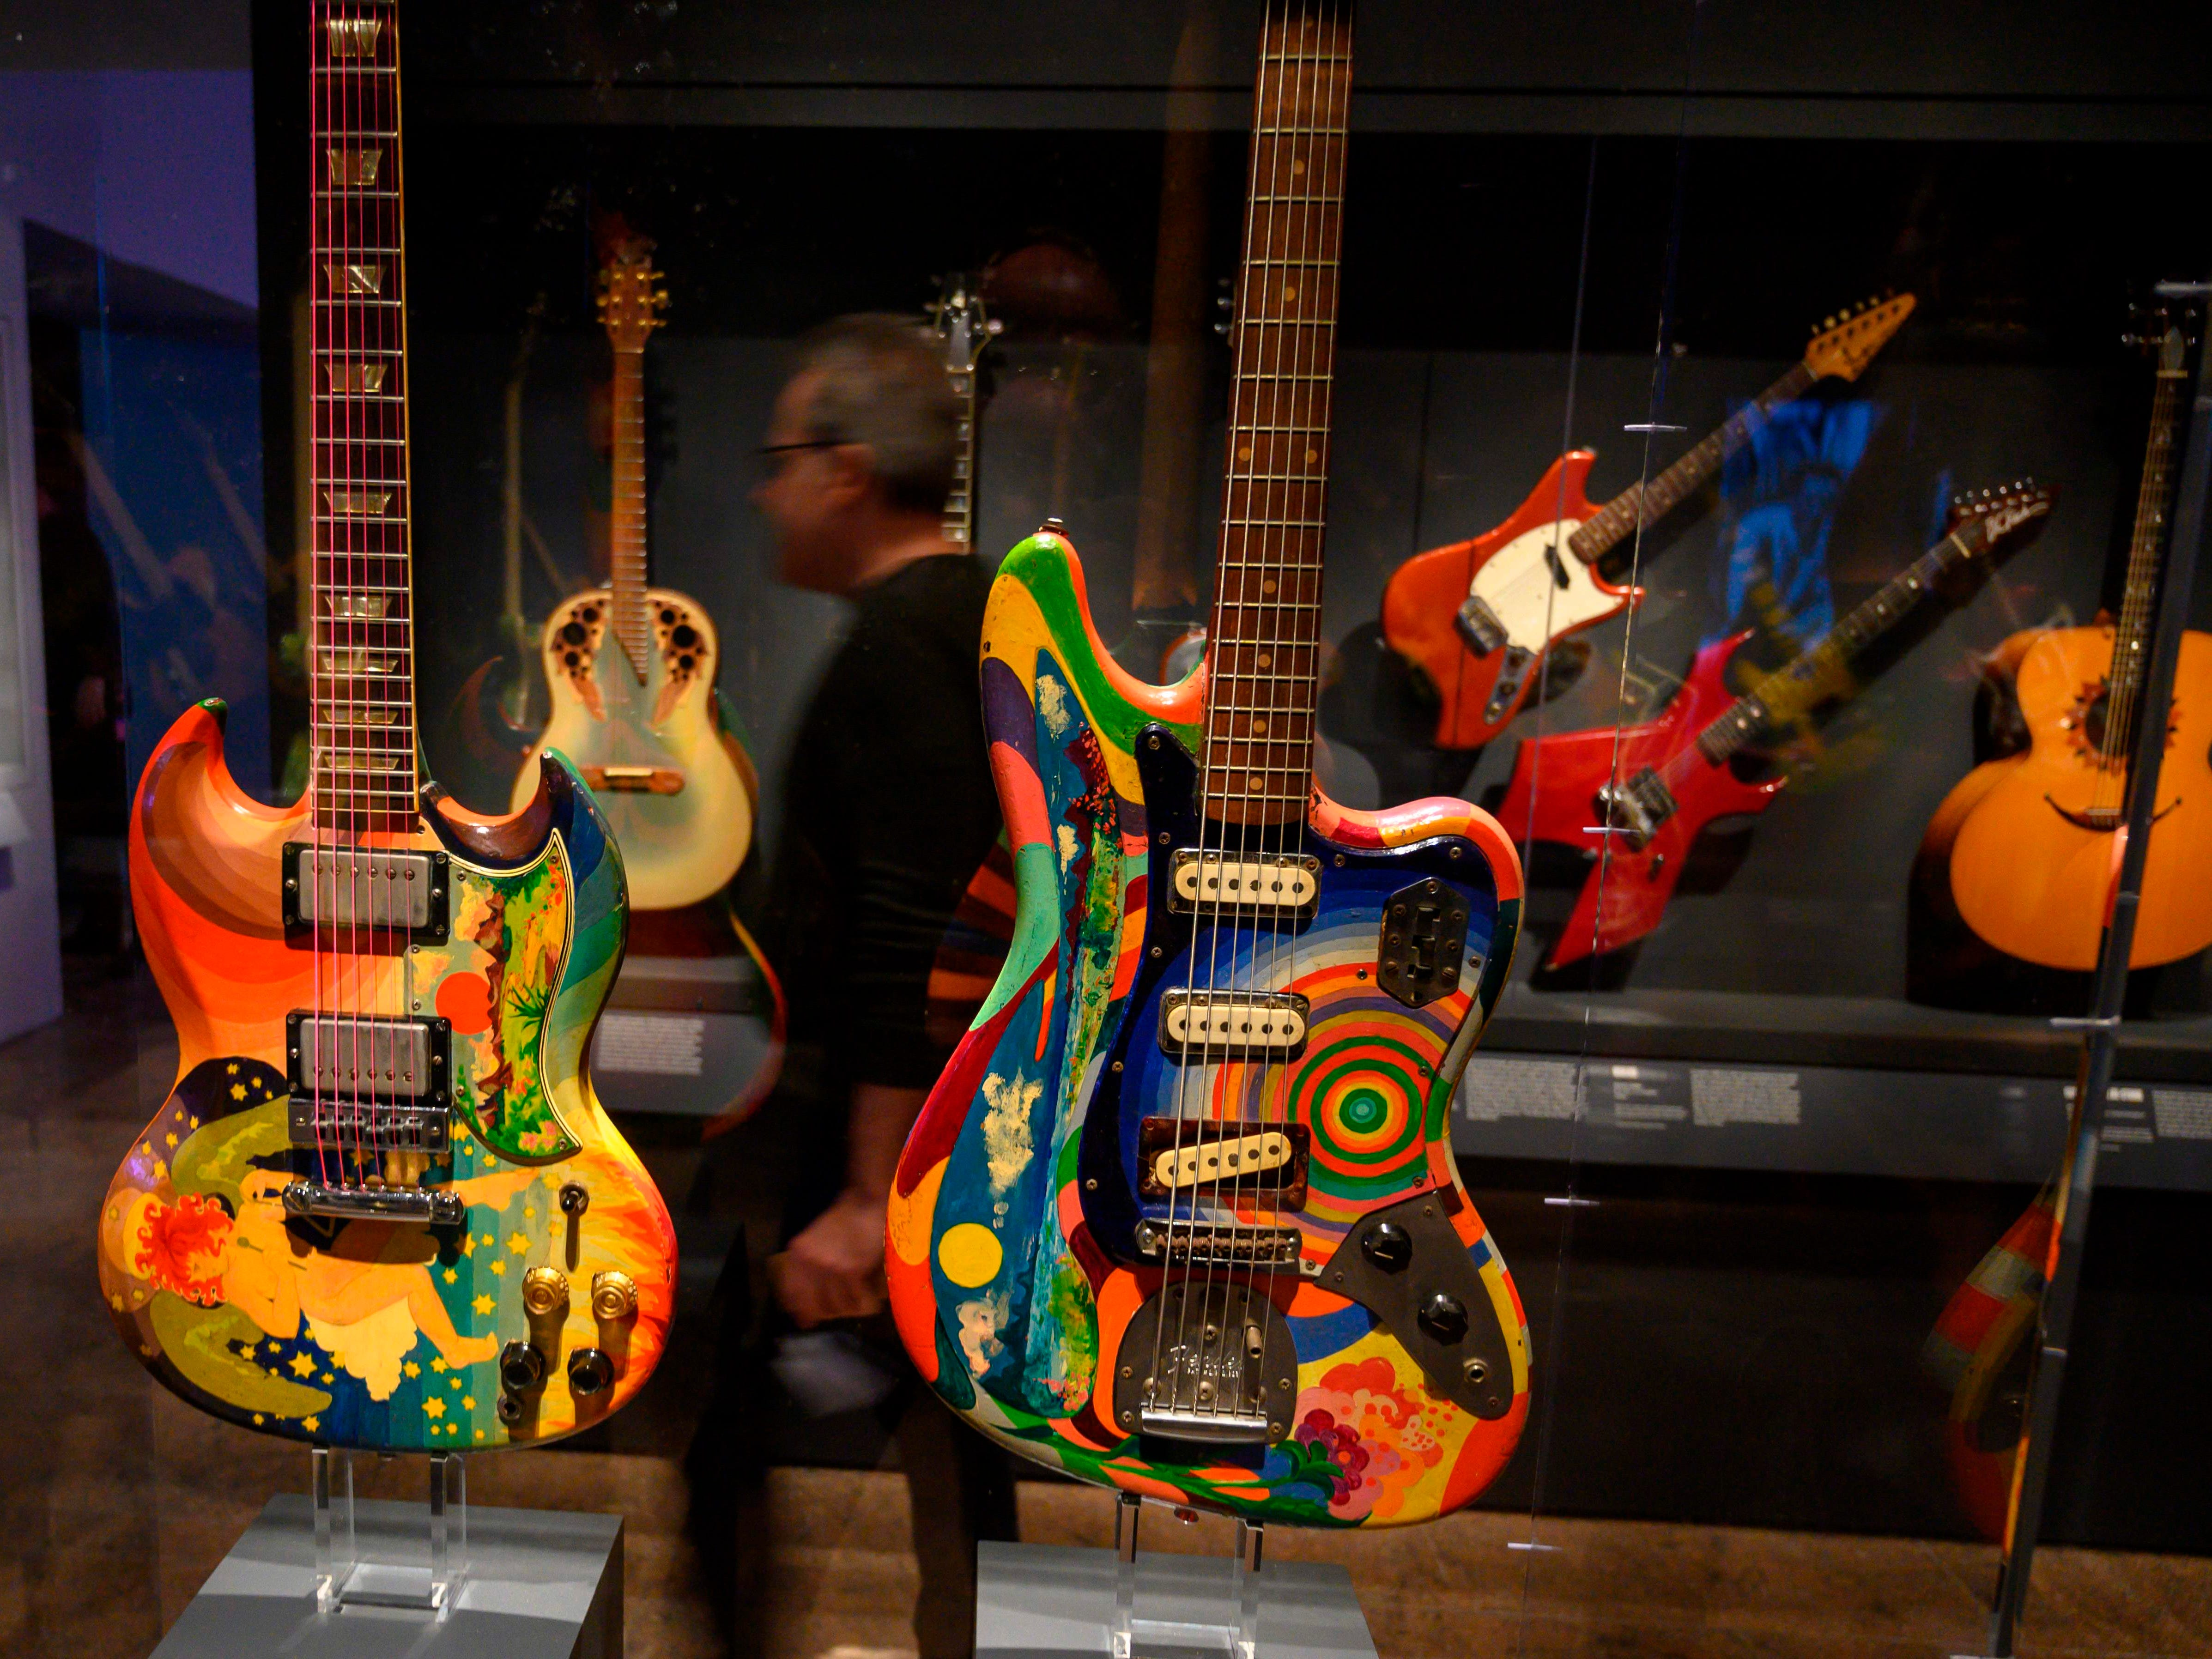 A reporter makes his way through a group of electric guitars.